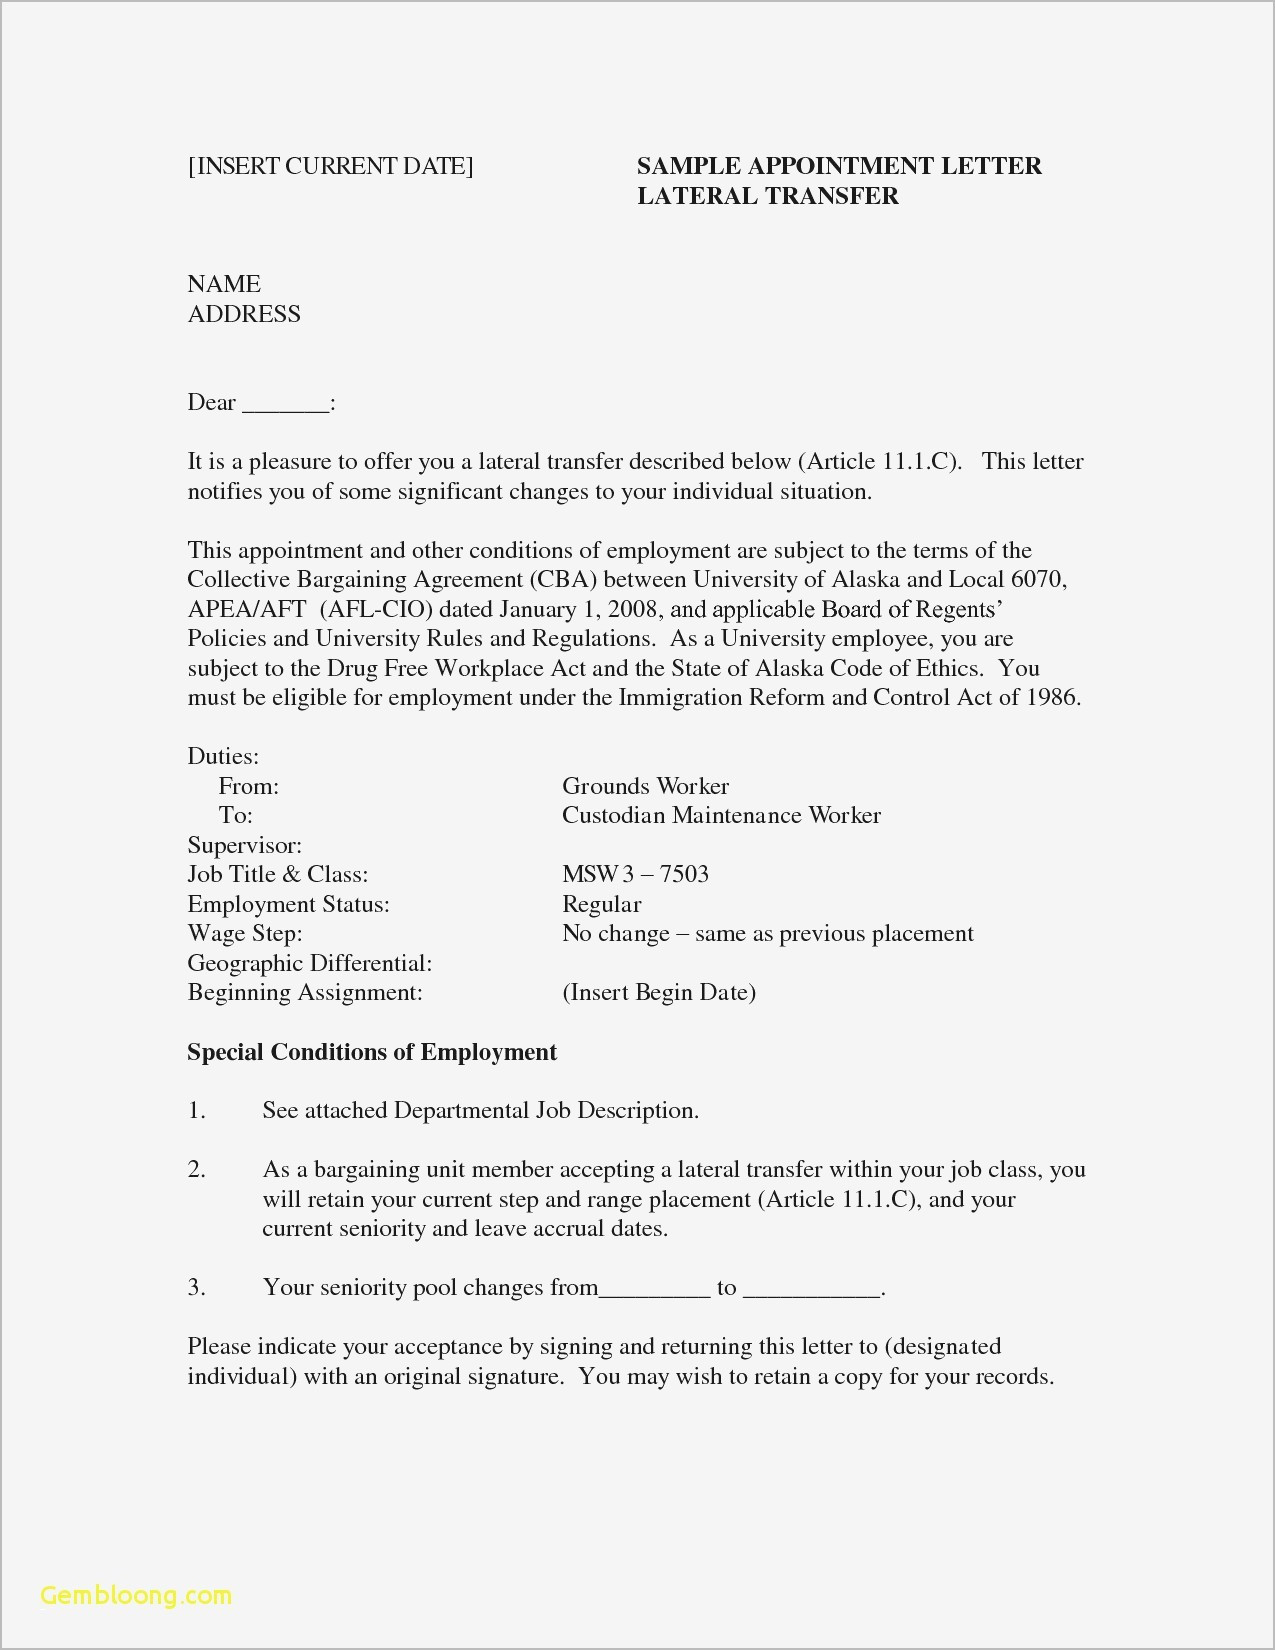 Free Template Resume Download - Sample Chronological Resume format Free Downloads Best Actor